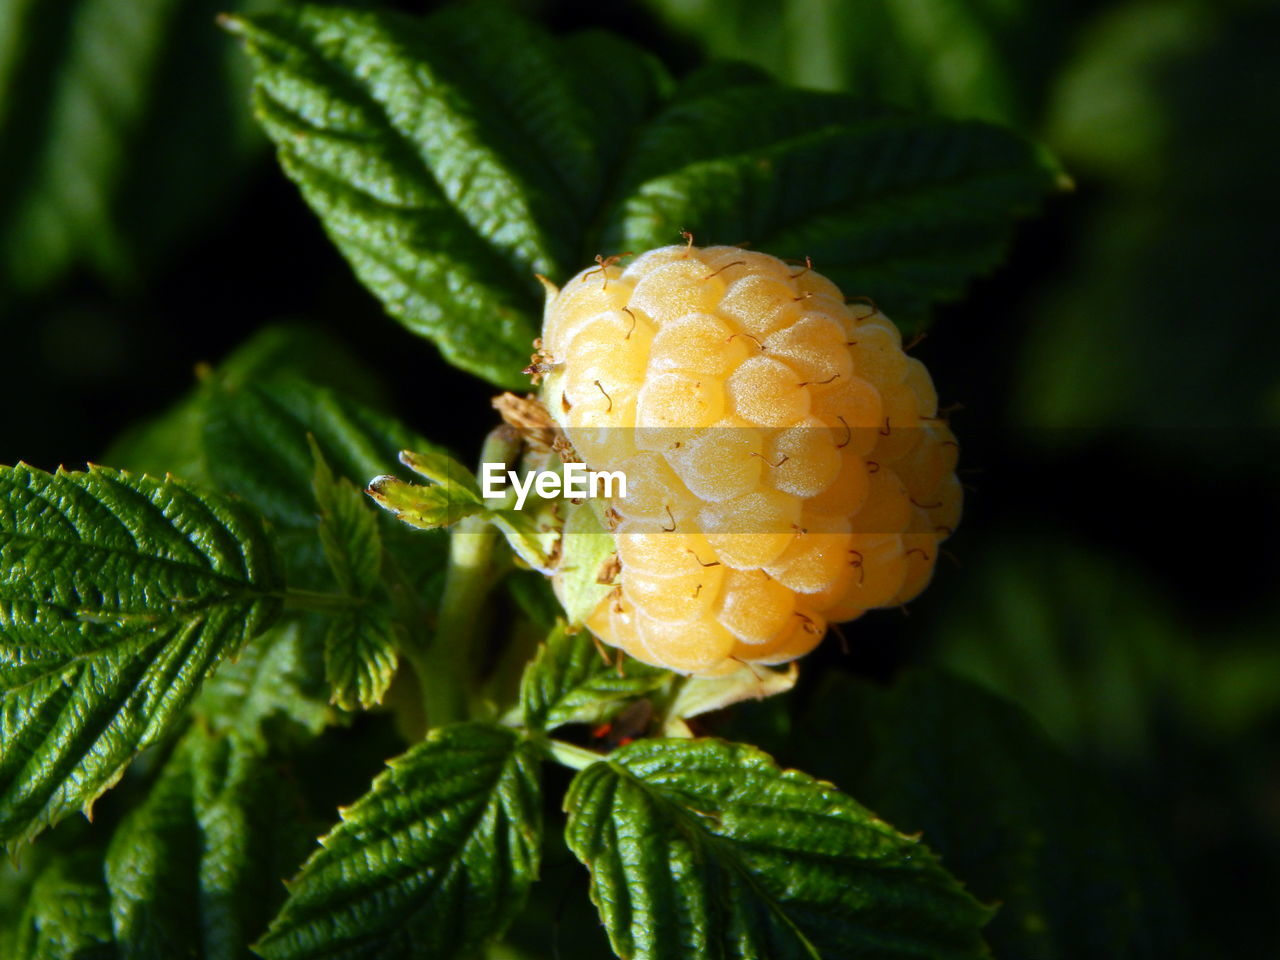 plant, growth, close-up, focus on foreground, leaf, green color, freshness, plant part, no people, nature, beauty in nature, food, day, healthy eating, yellow, food and drink, outdoors, fruit, wellbeing, tree